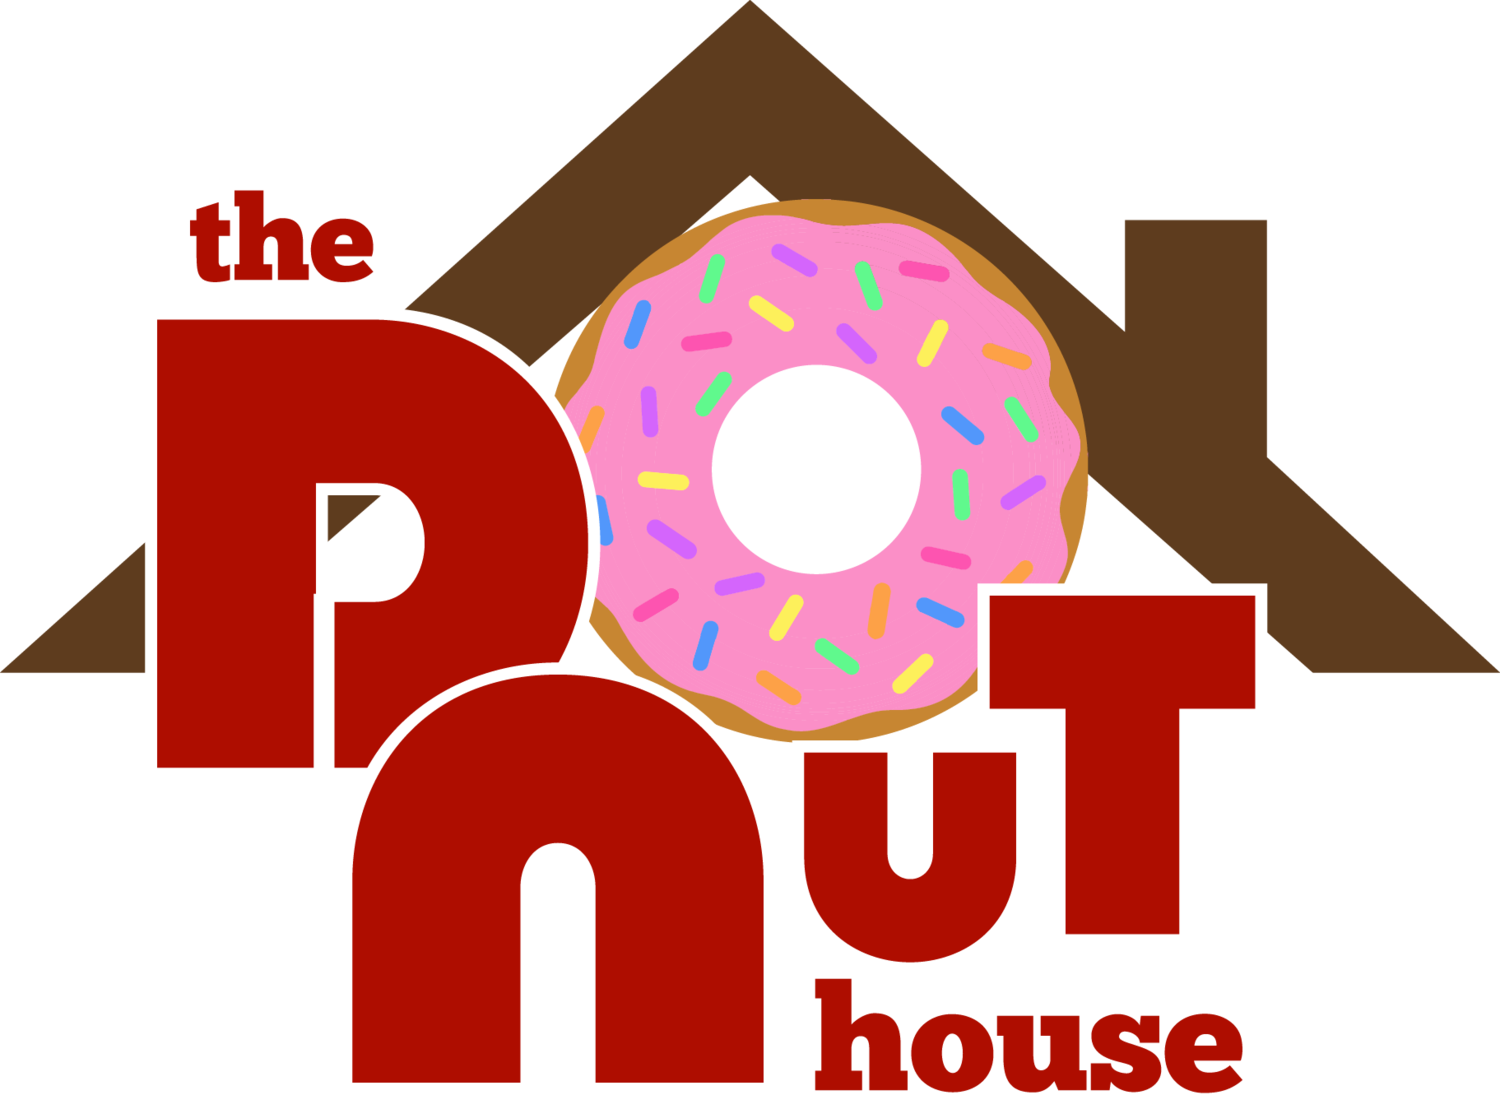 Donuts clipart half donut. The house red oak